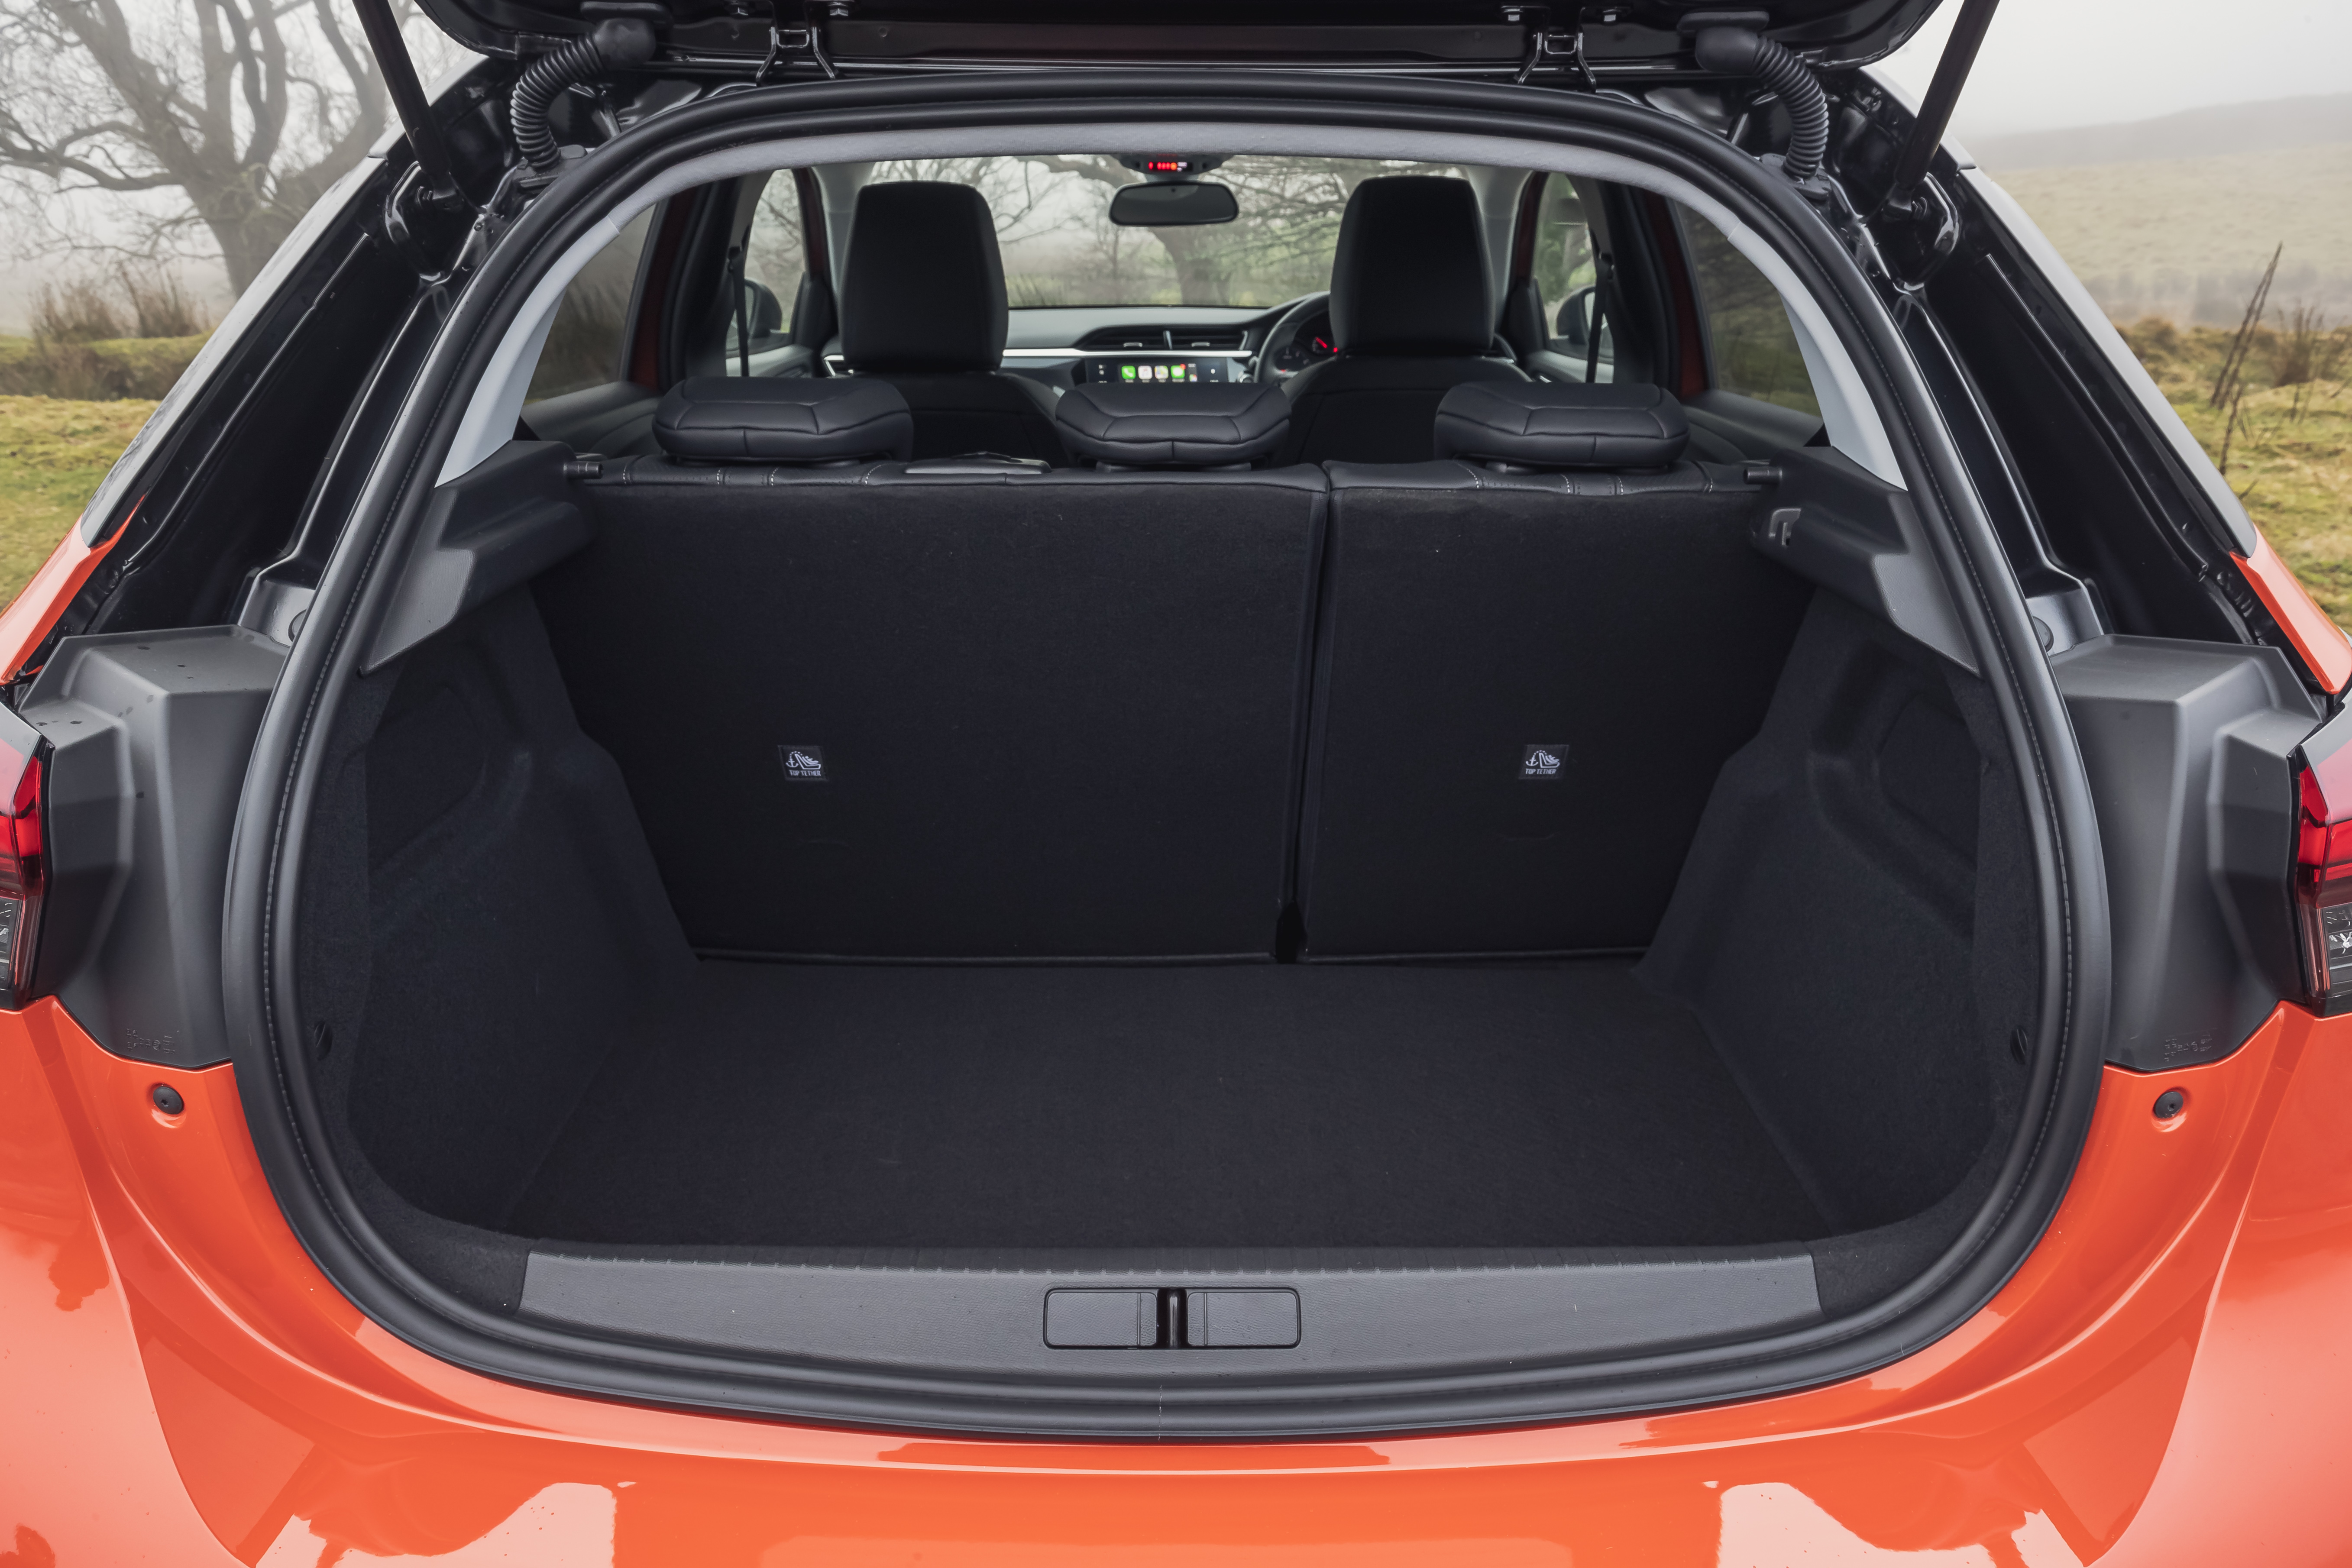 There's plenty of boot space available with the Corsa